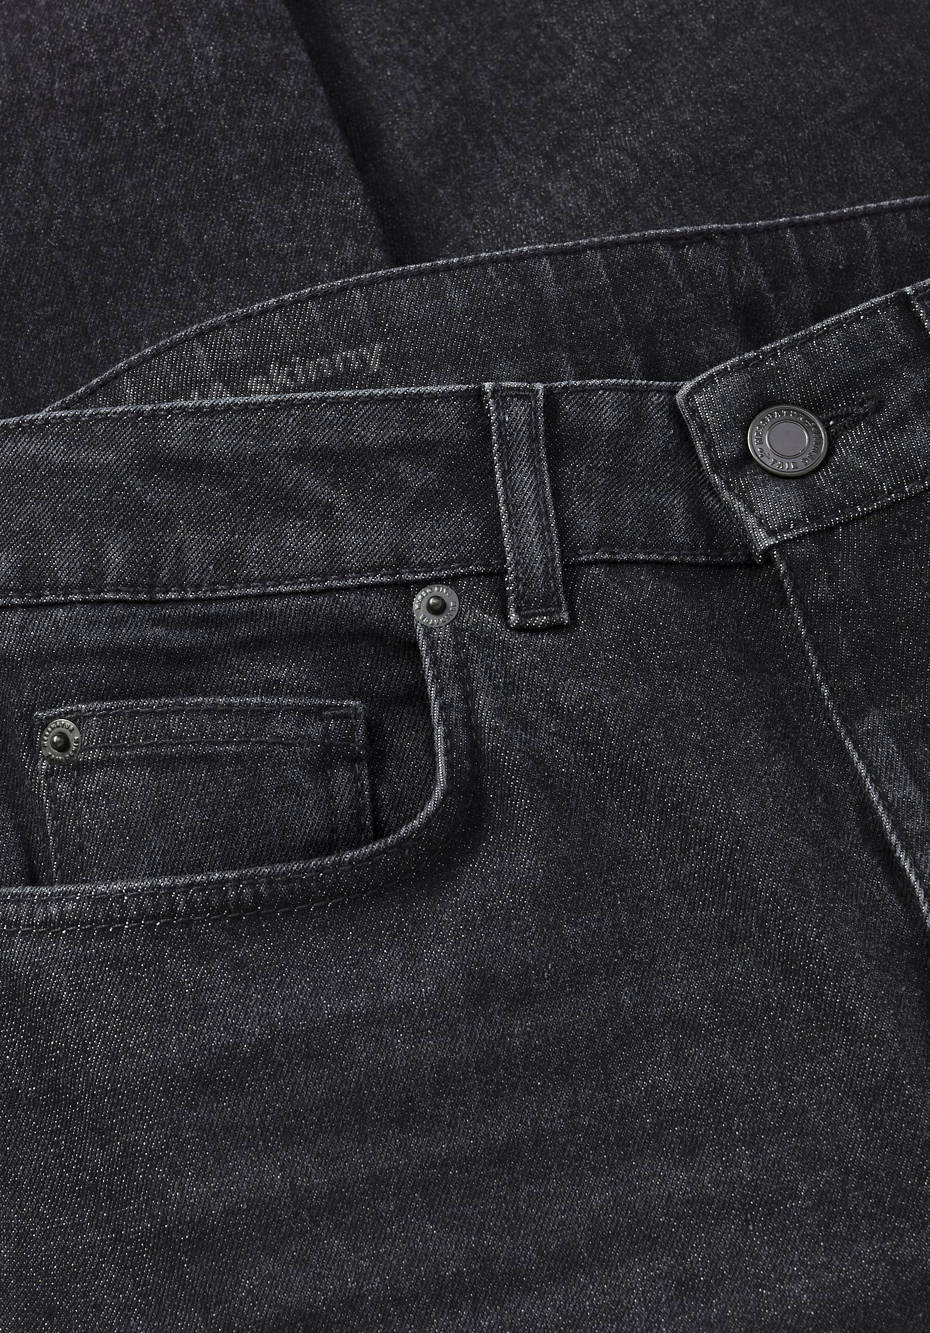 Betterecycling Jeans Lina Skinny Fit made of organic denim